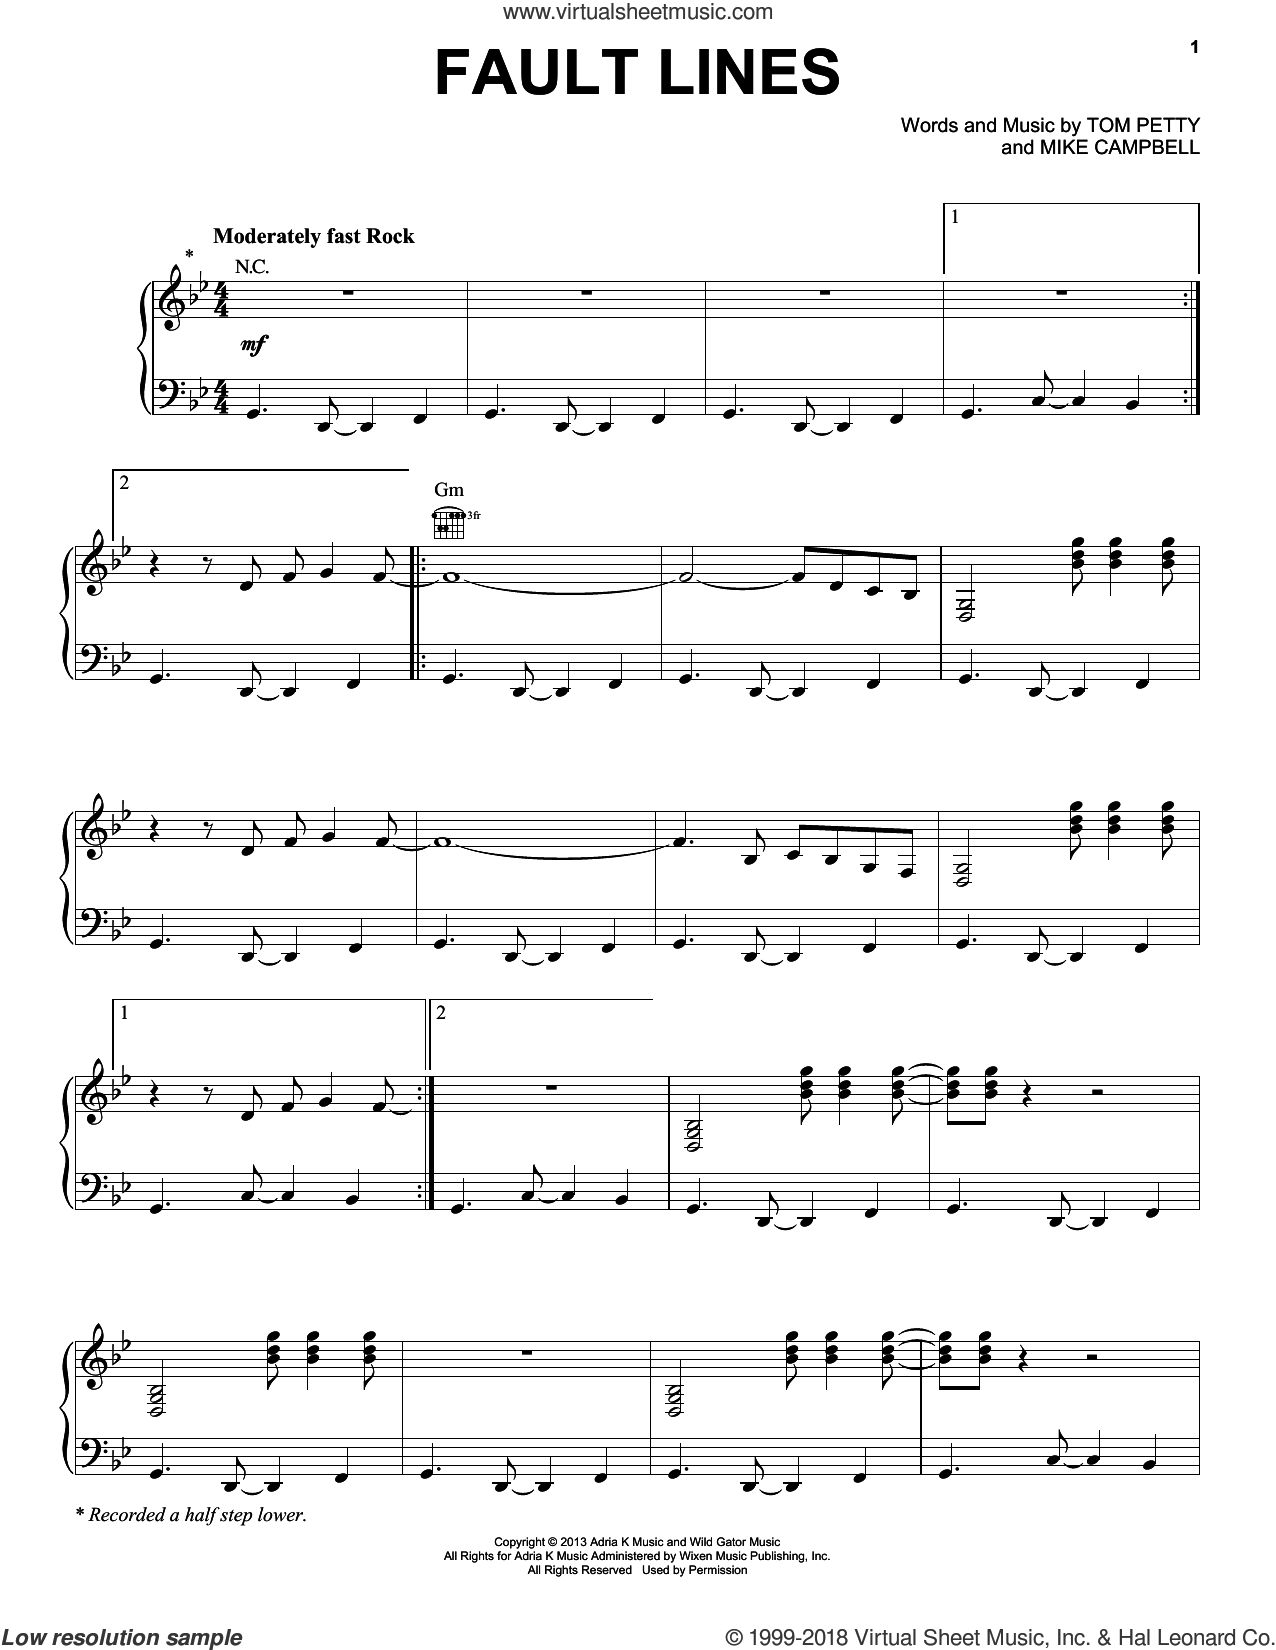 Fault Lines sheet music for voice, piano or guitar by Tom Petty, Tom Petty And The Heartbreakers and Mike Campbell, intermediate skill level